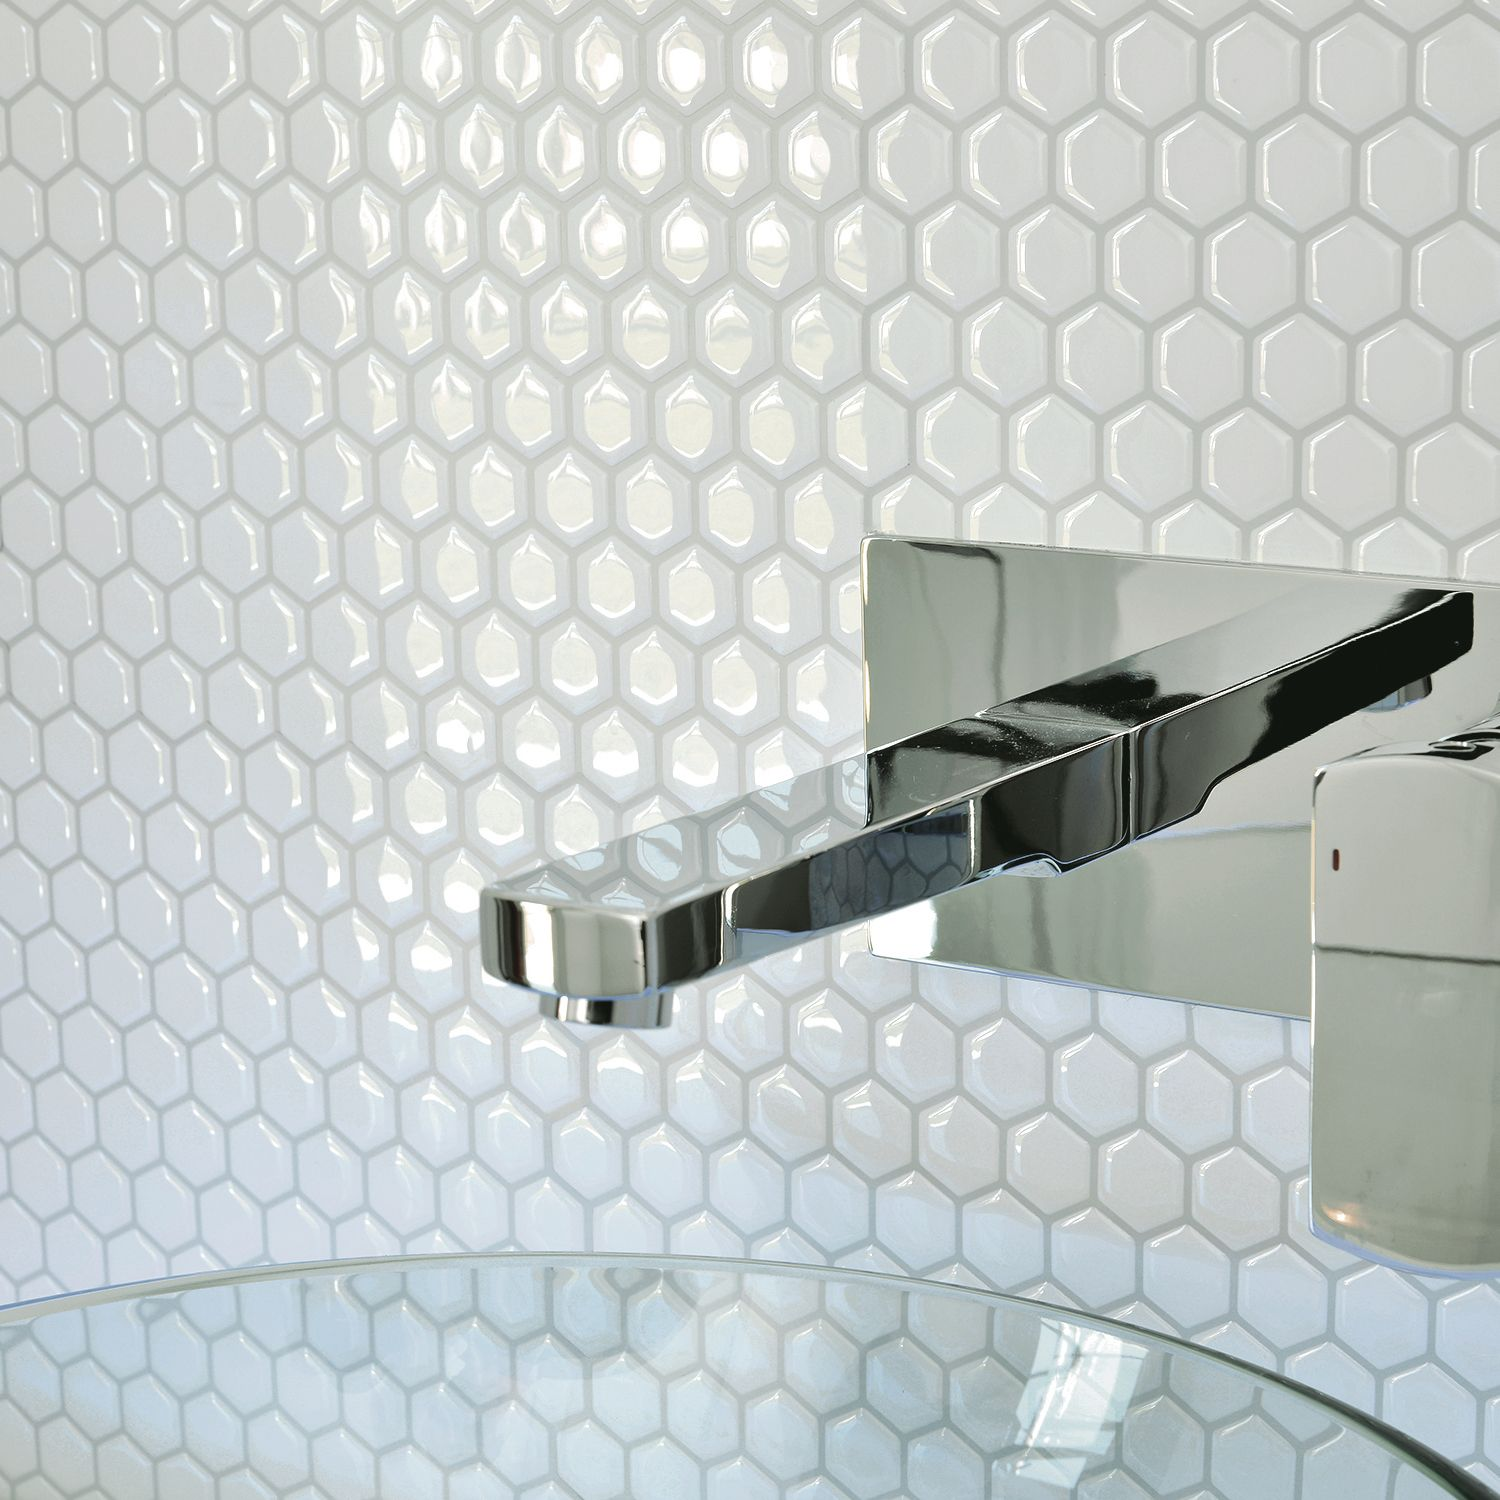 Peel and stick bathroom tiles | Smart Tiles | Bathroom | Pinterest ...